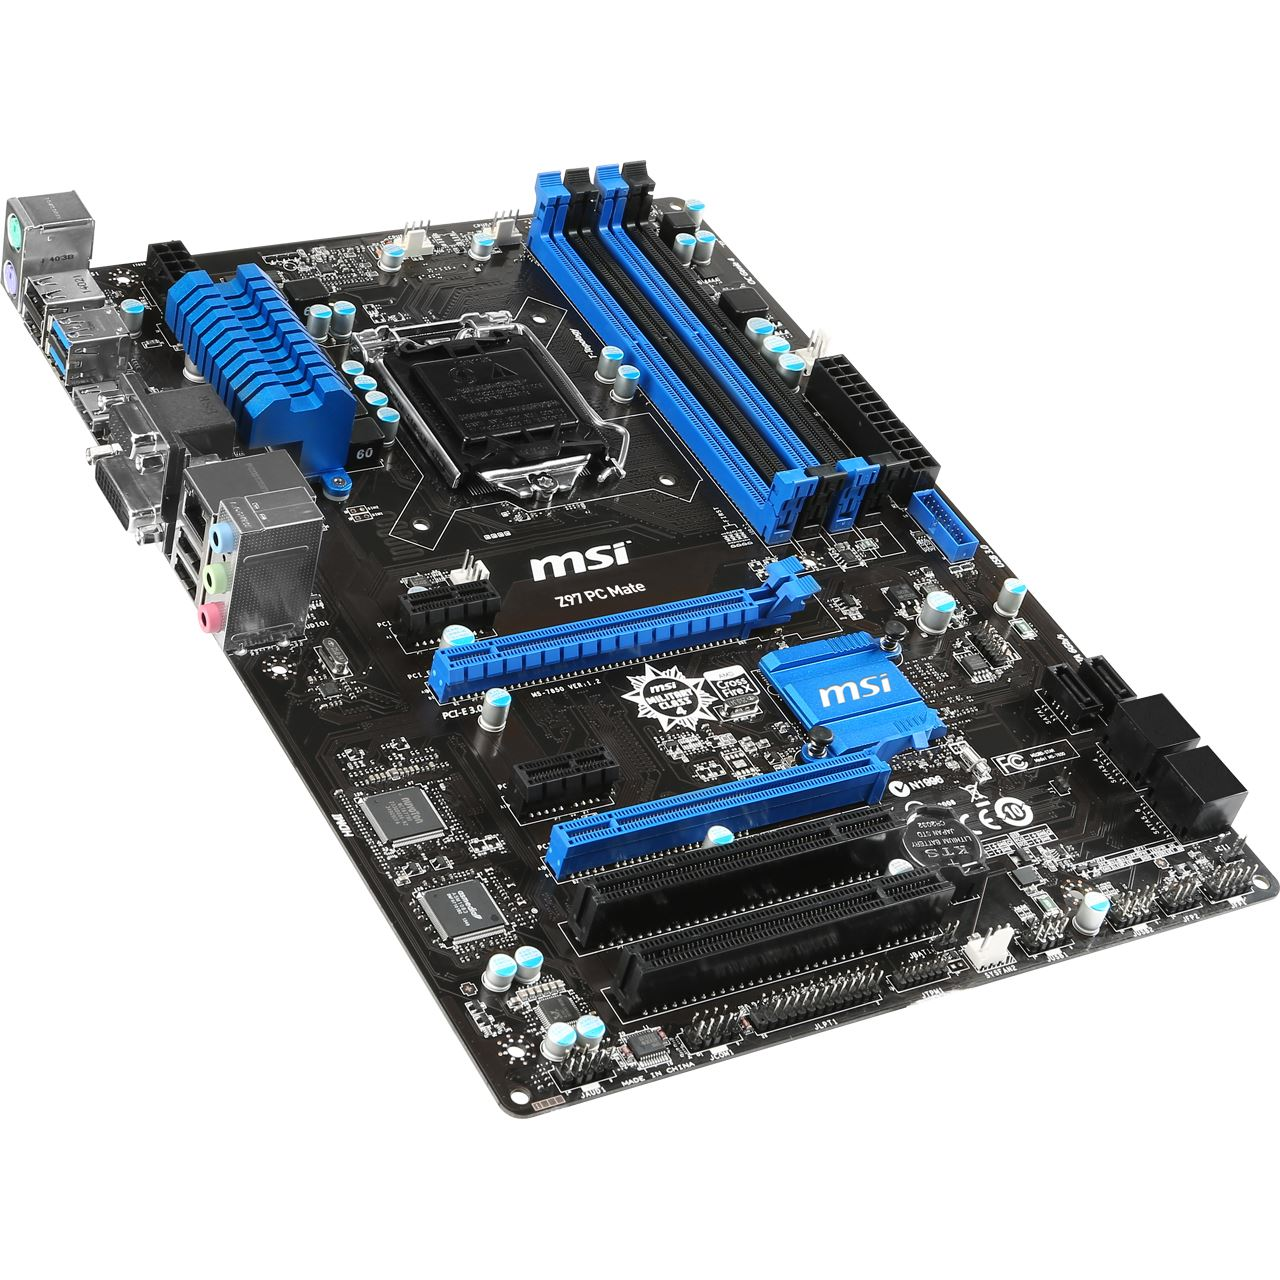 Overview for Z97 PC Mate  Motherboard  MSI Notebook